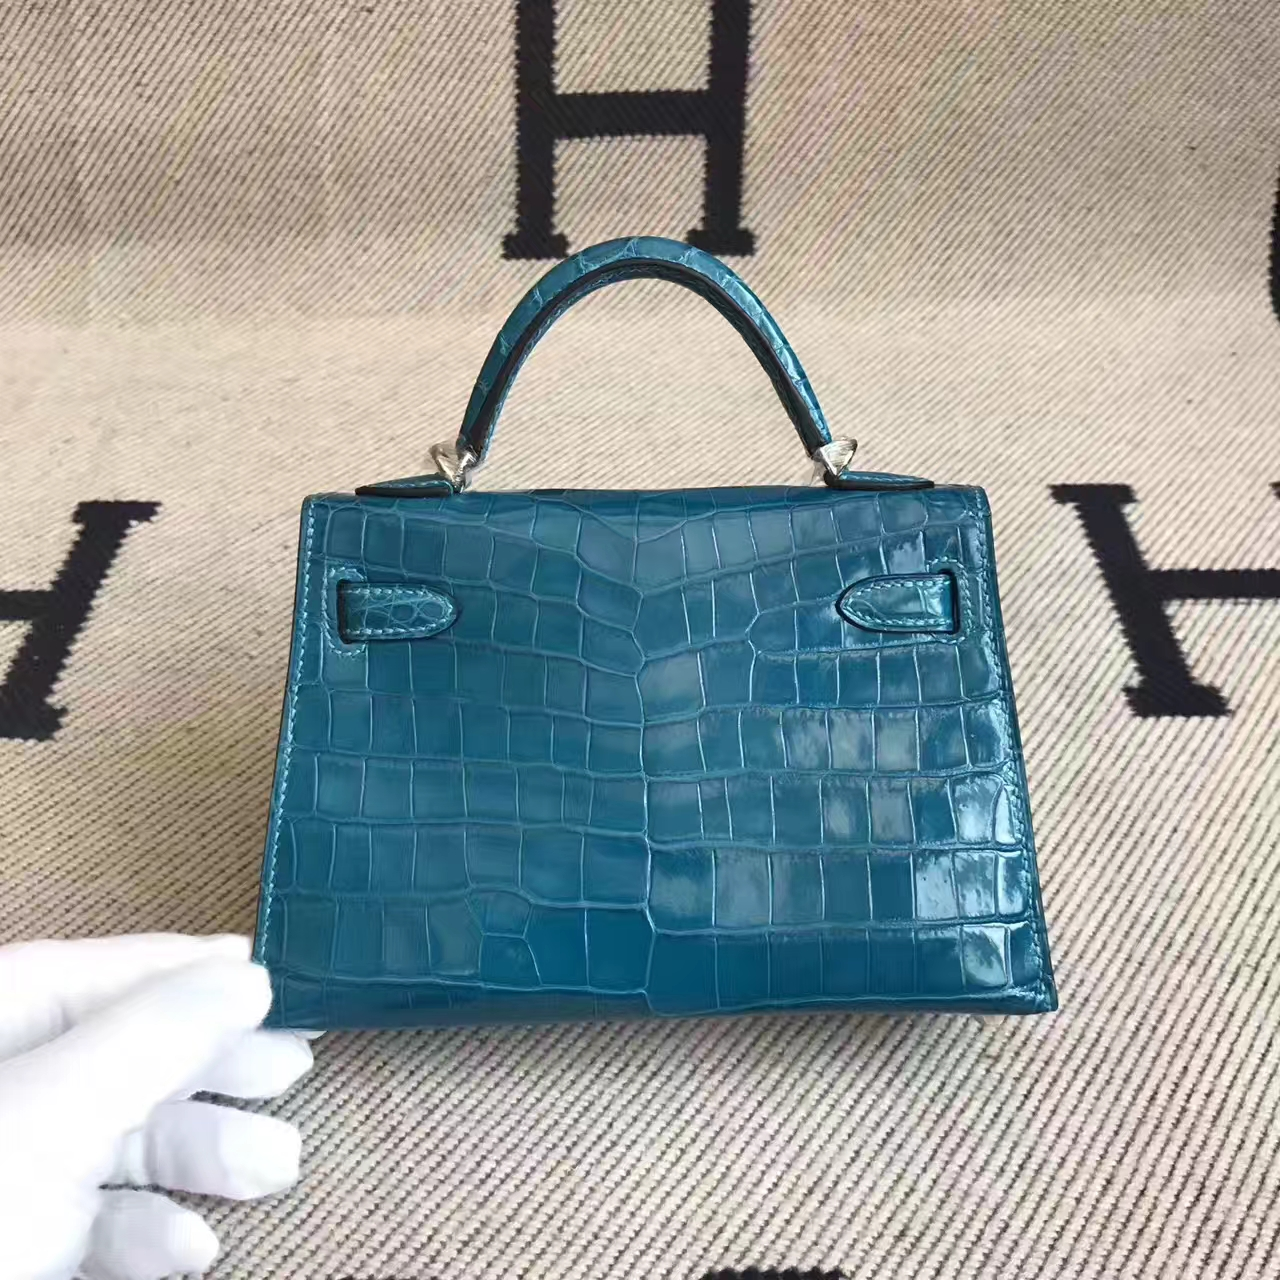 New Arrival Hermes Minikelly-2 Clutch Bag in 7W Blue Izmir Crocodile Leather